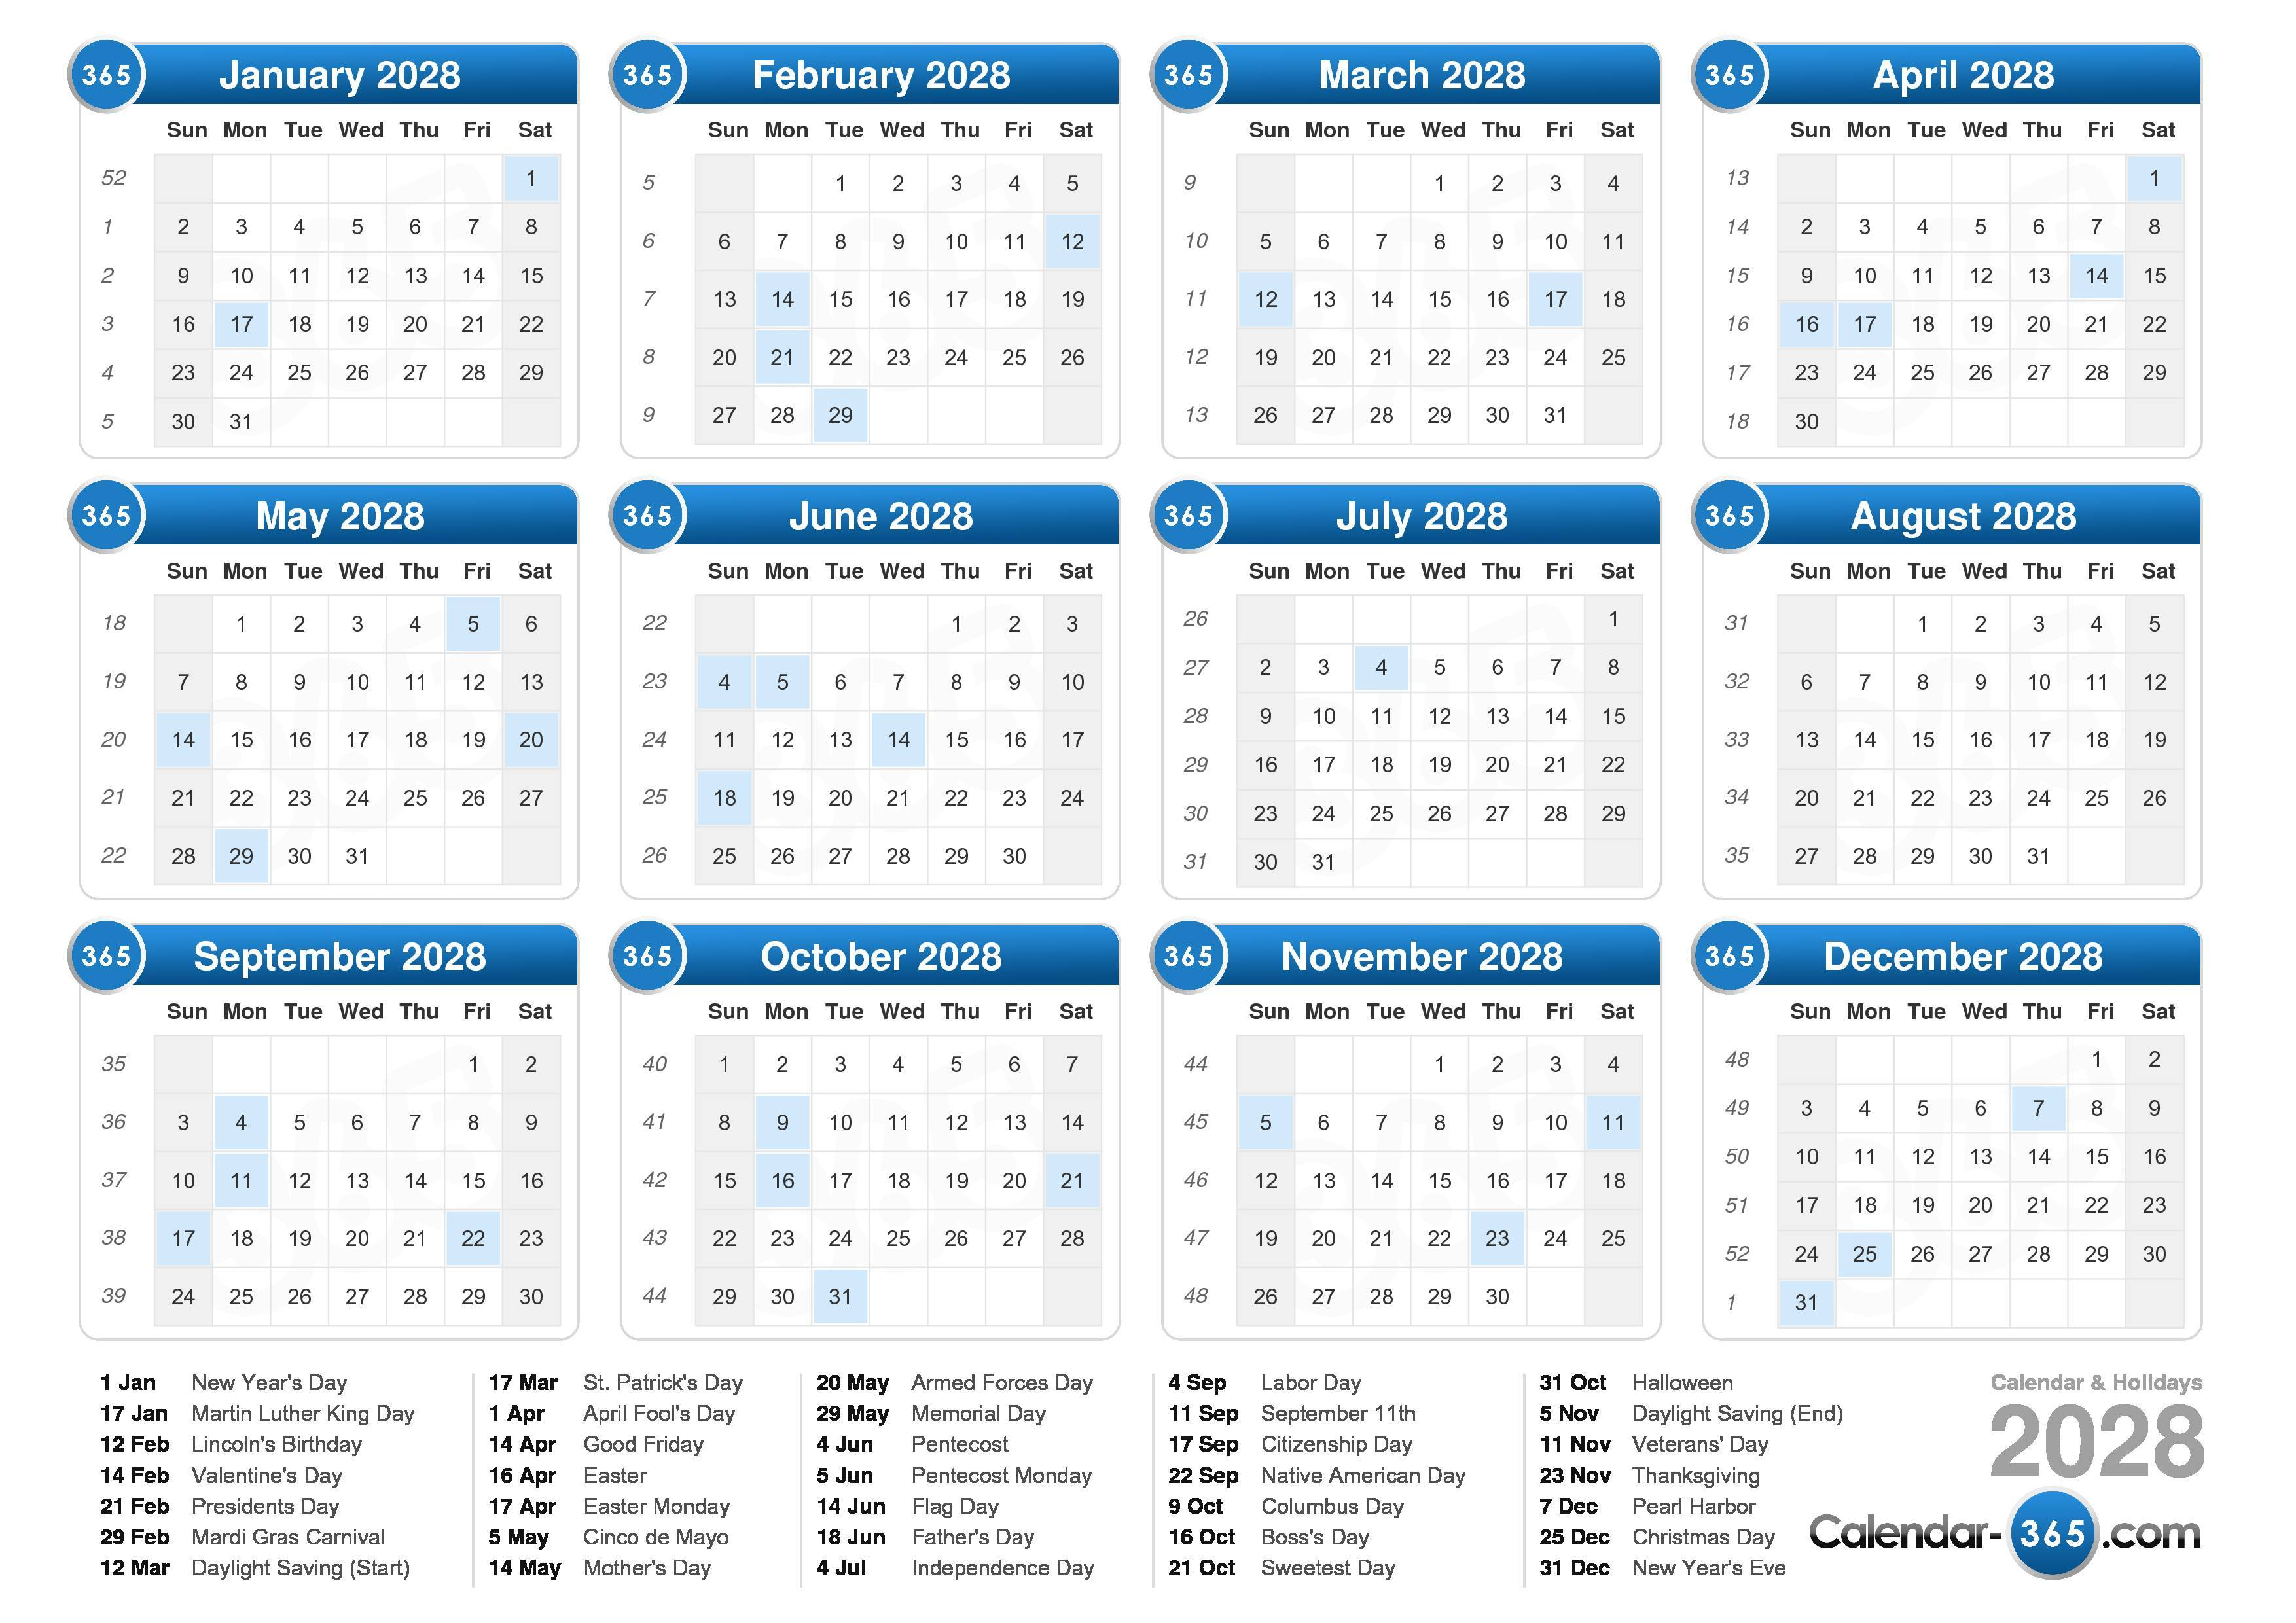 ... calendar with holidays landscape format 1 page 2028 calendar 704 5 508